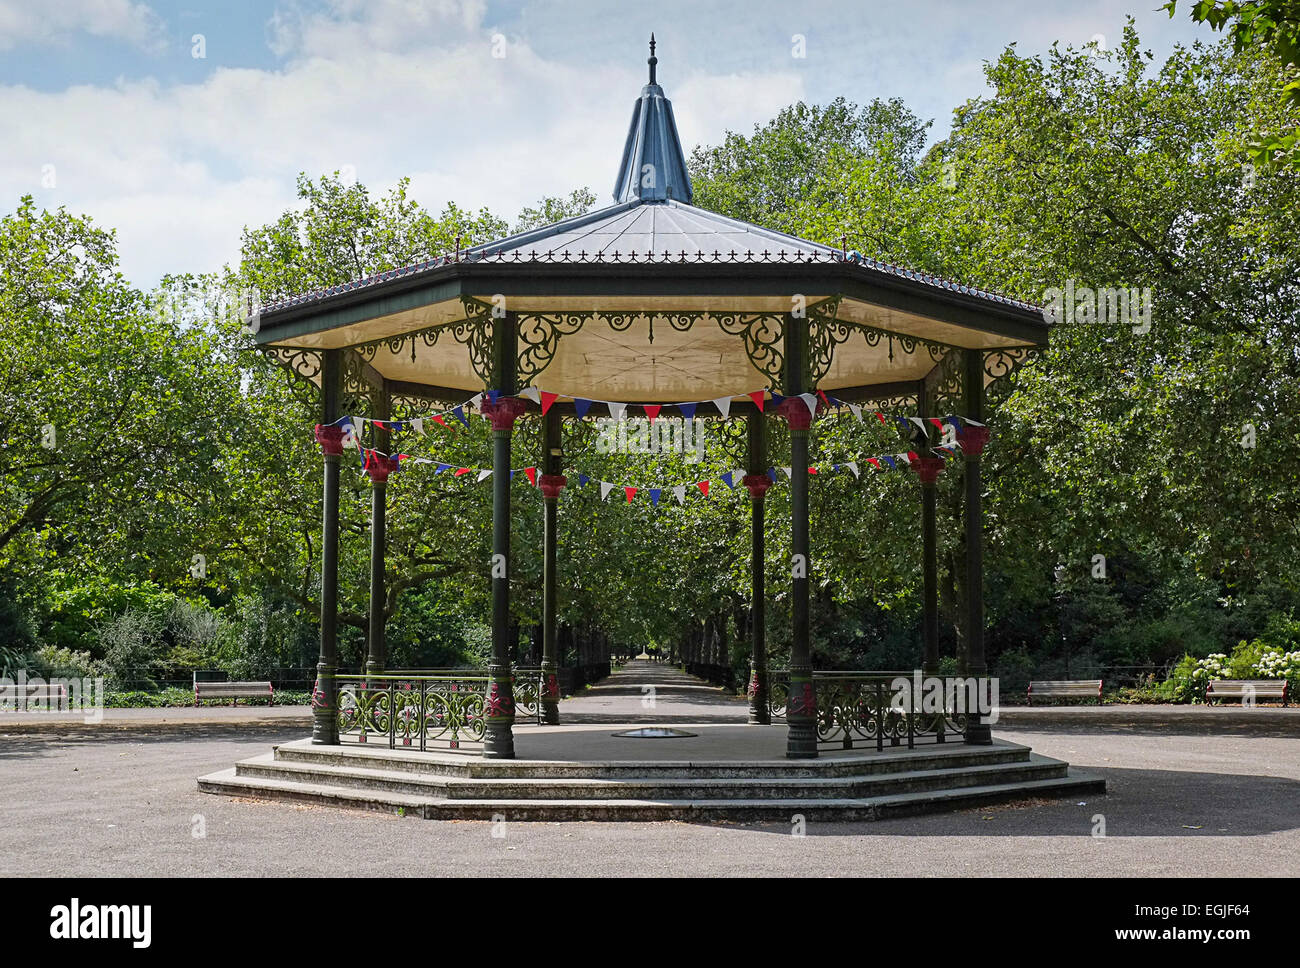 the Victorian bandstand in London's Battersea Park. - Stock Image